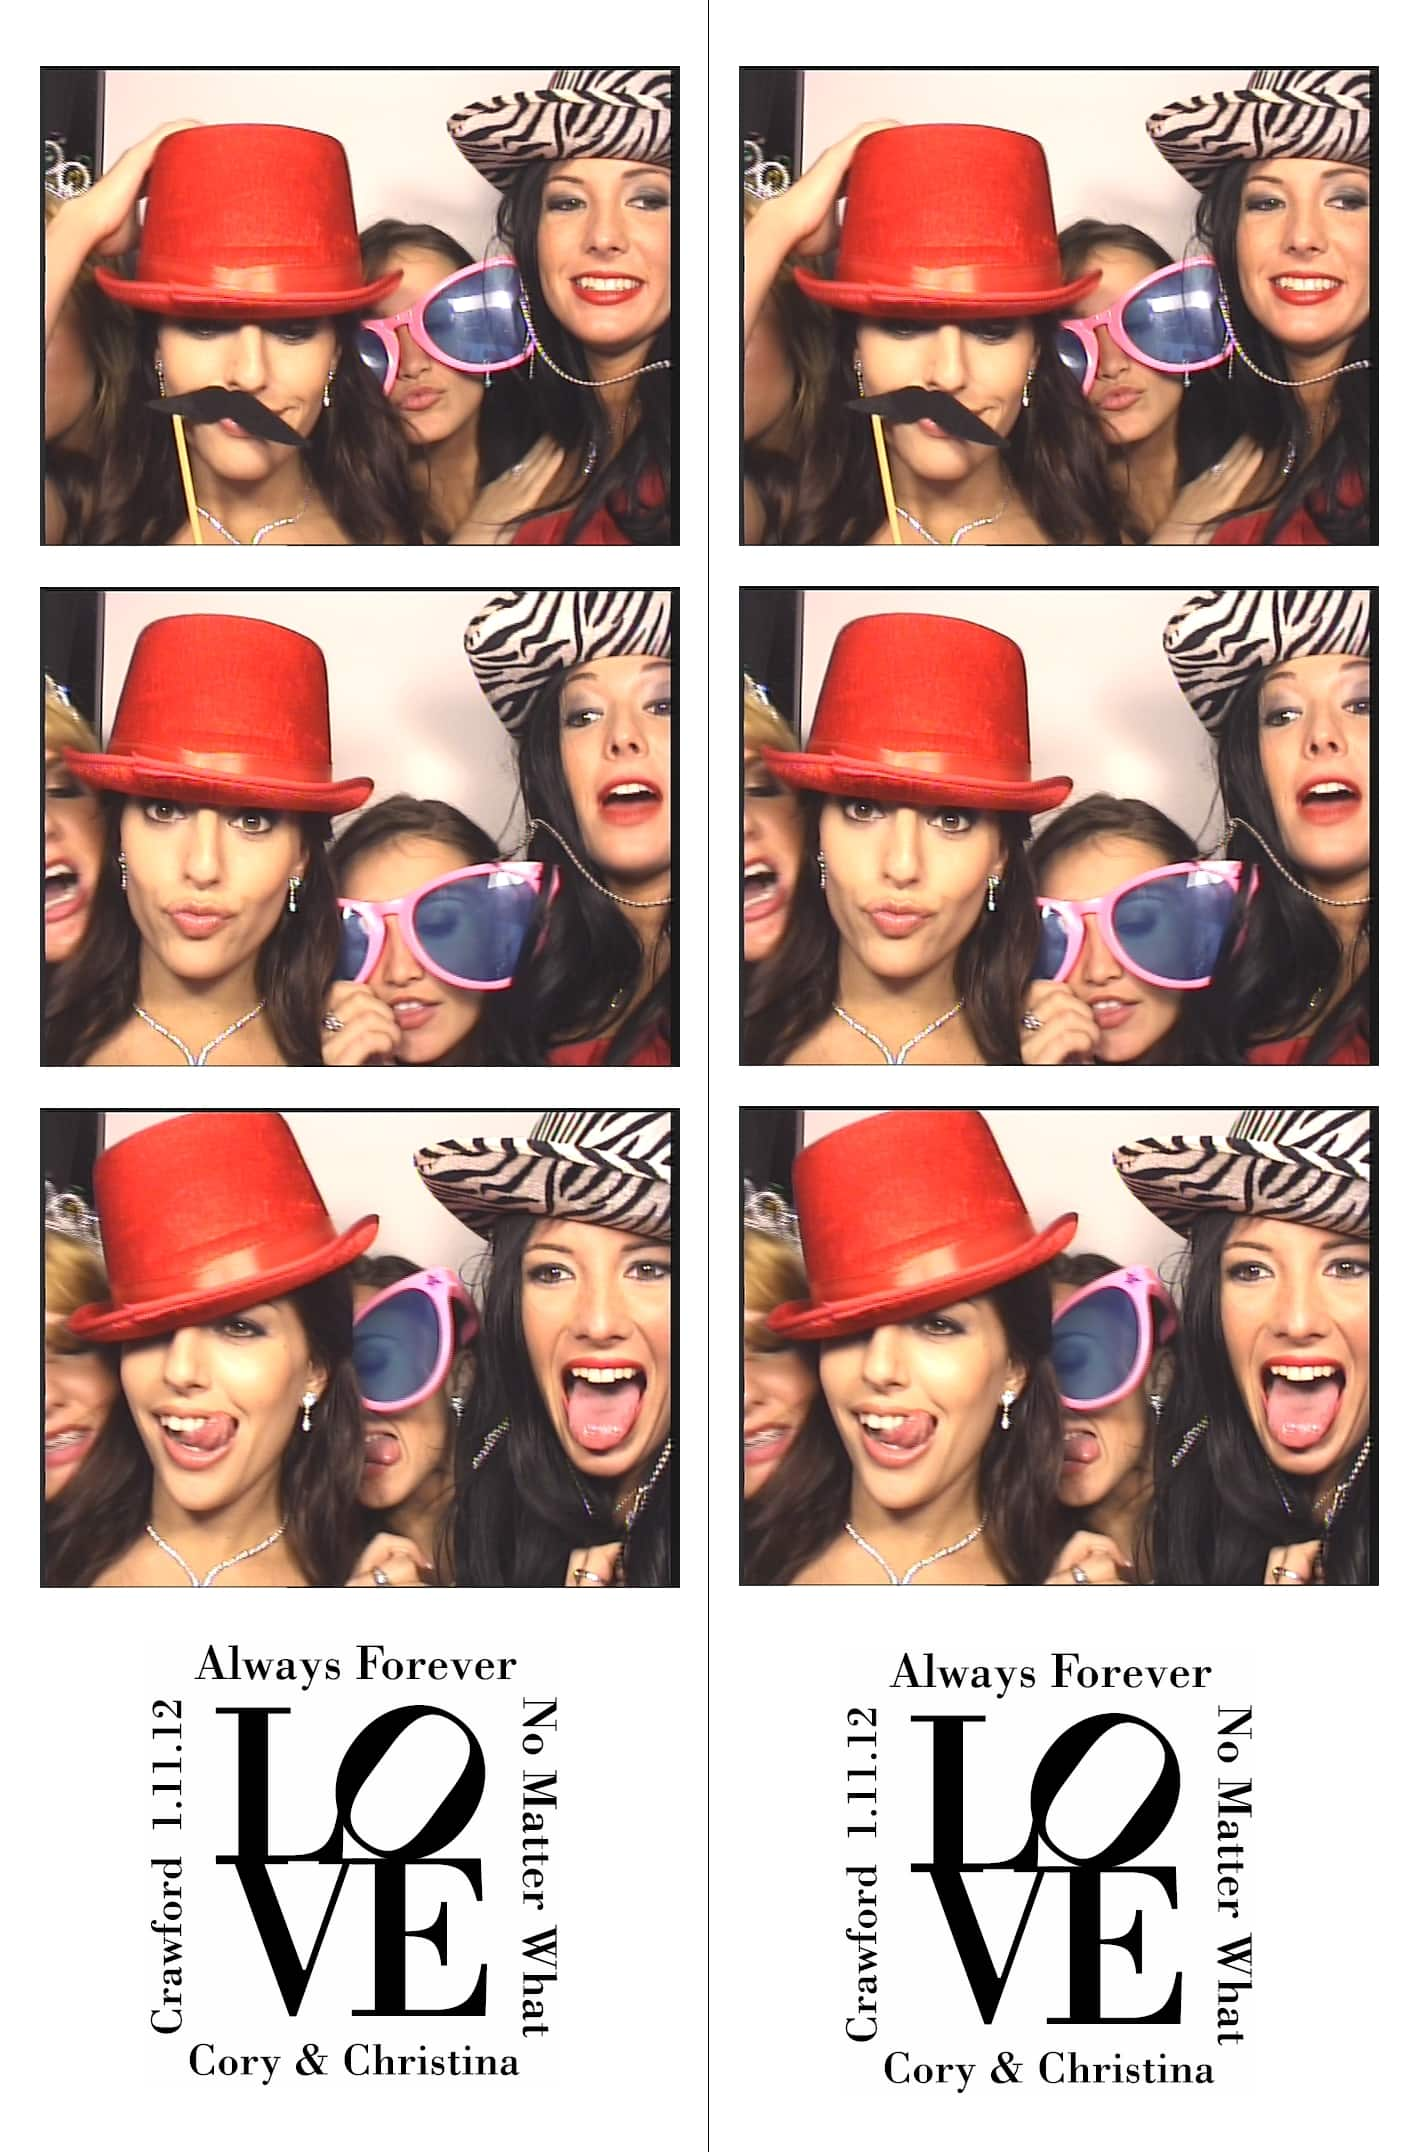 ladies in photo booth with silly props